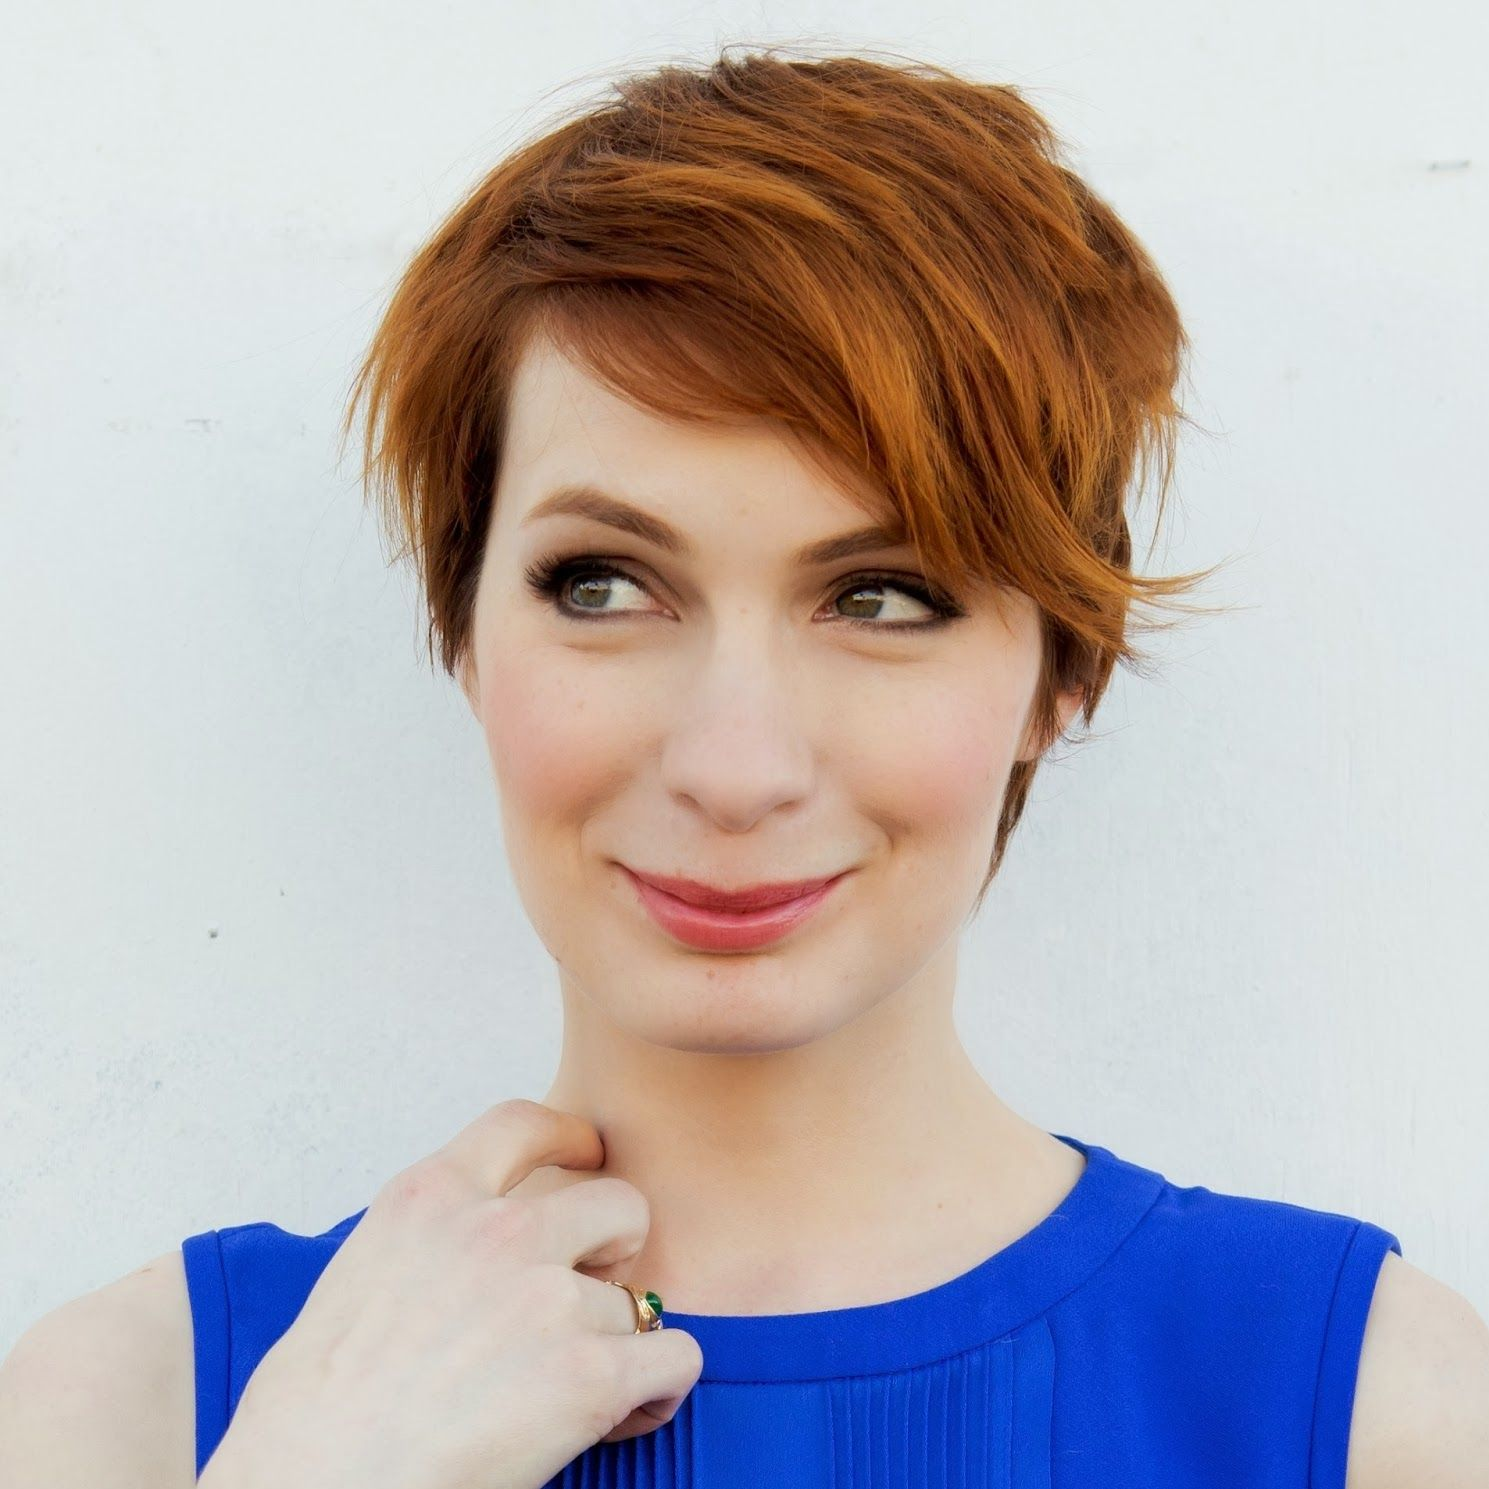 Image Result For Felicia Day Short Hair Hair Concepts Pinterest